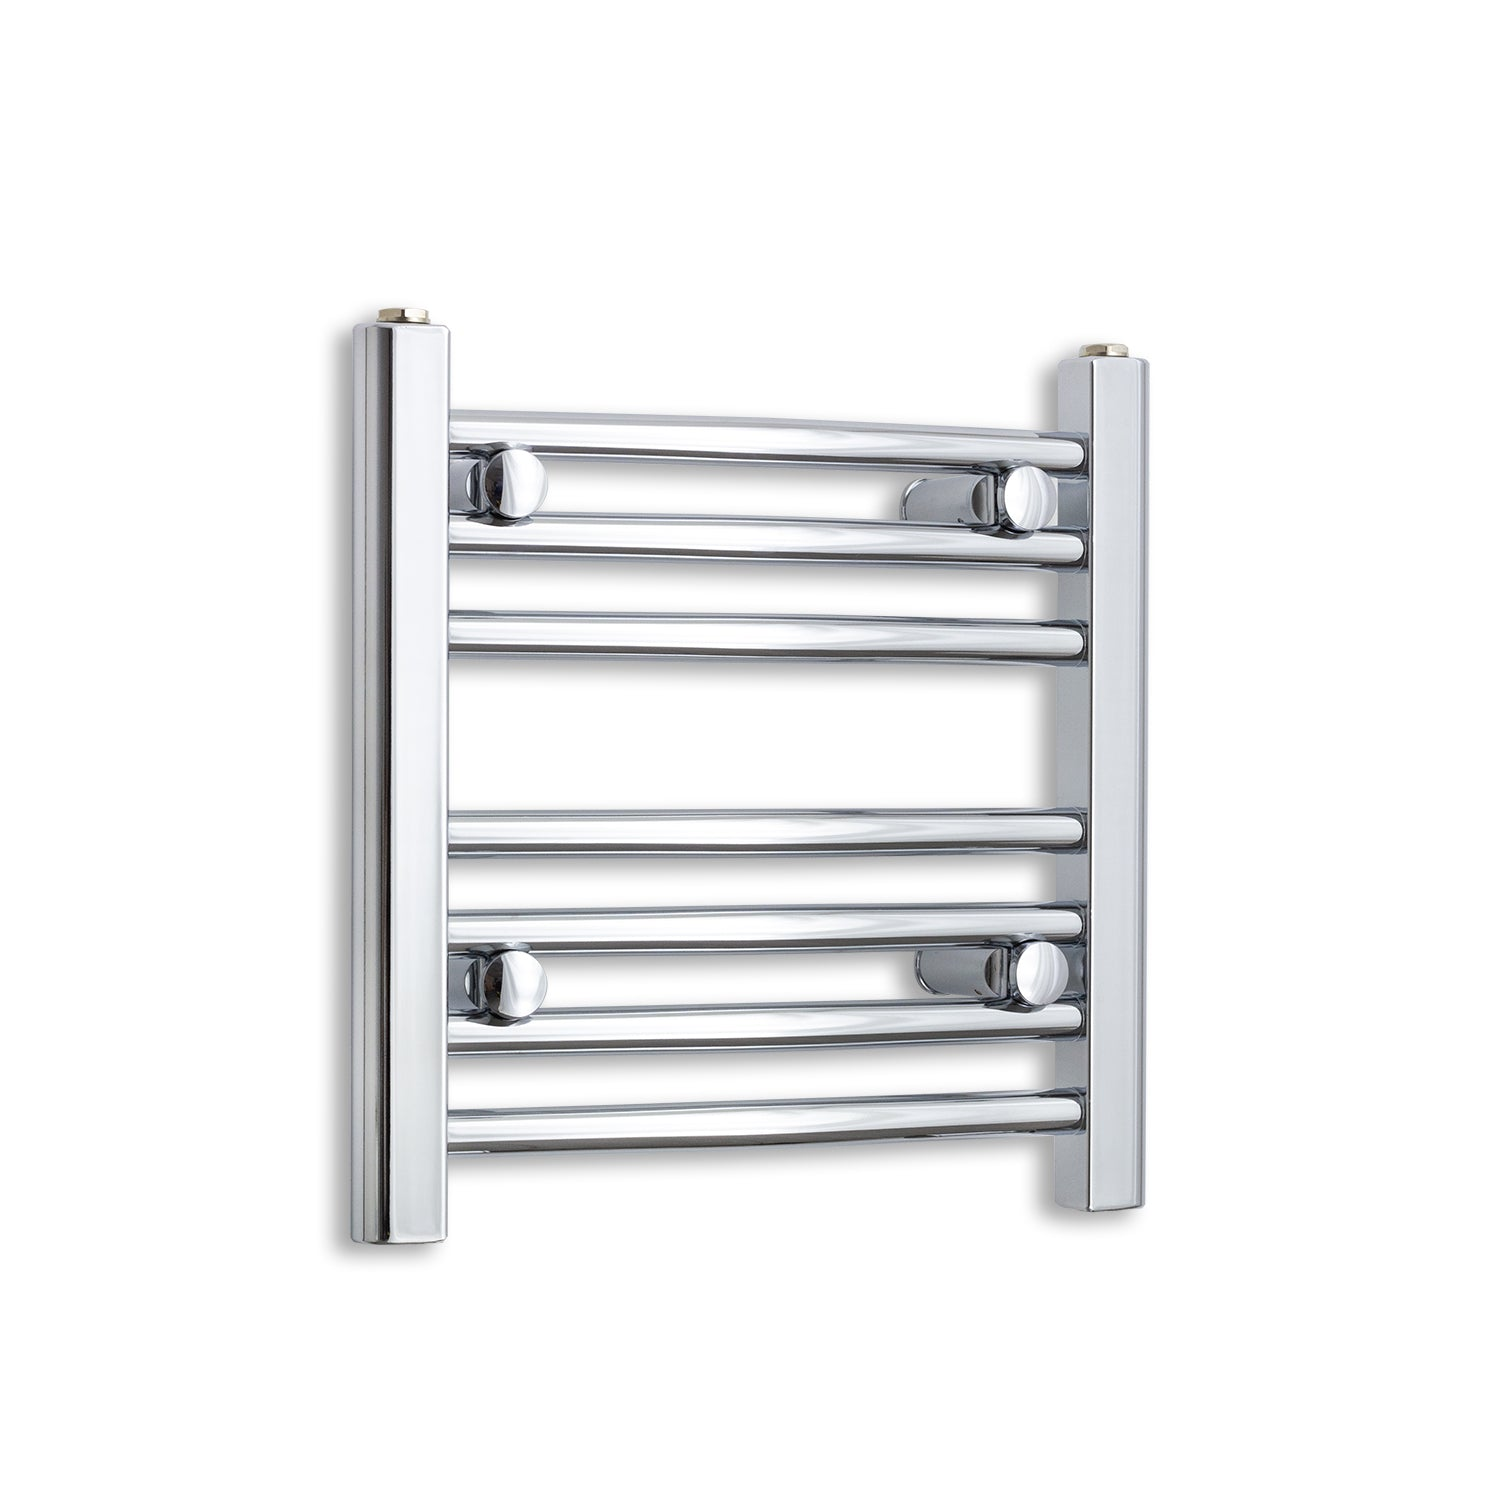 500mm Wide 400mm High Chrome Towel Rail Radiator